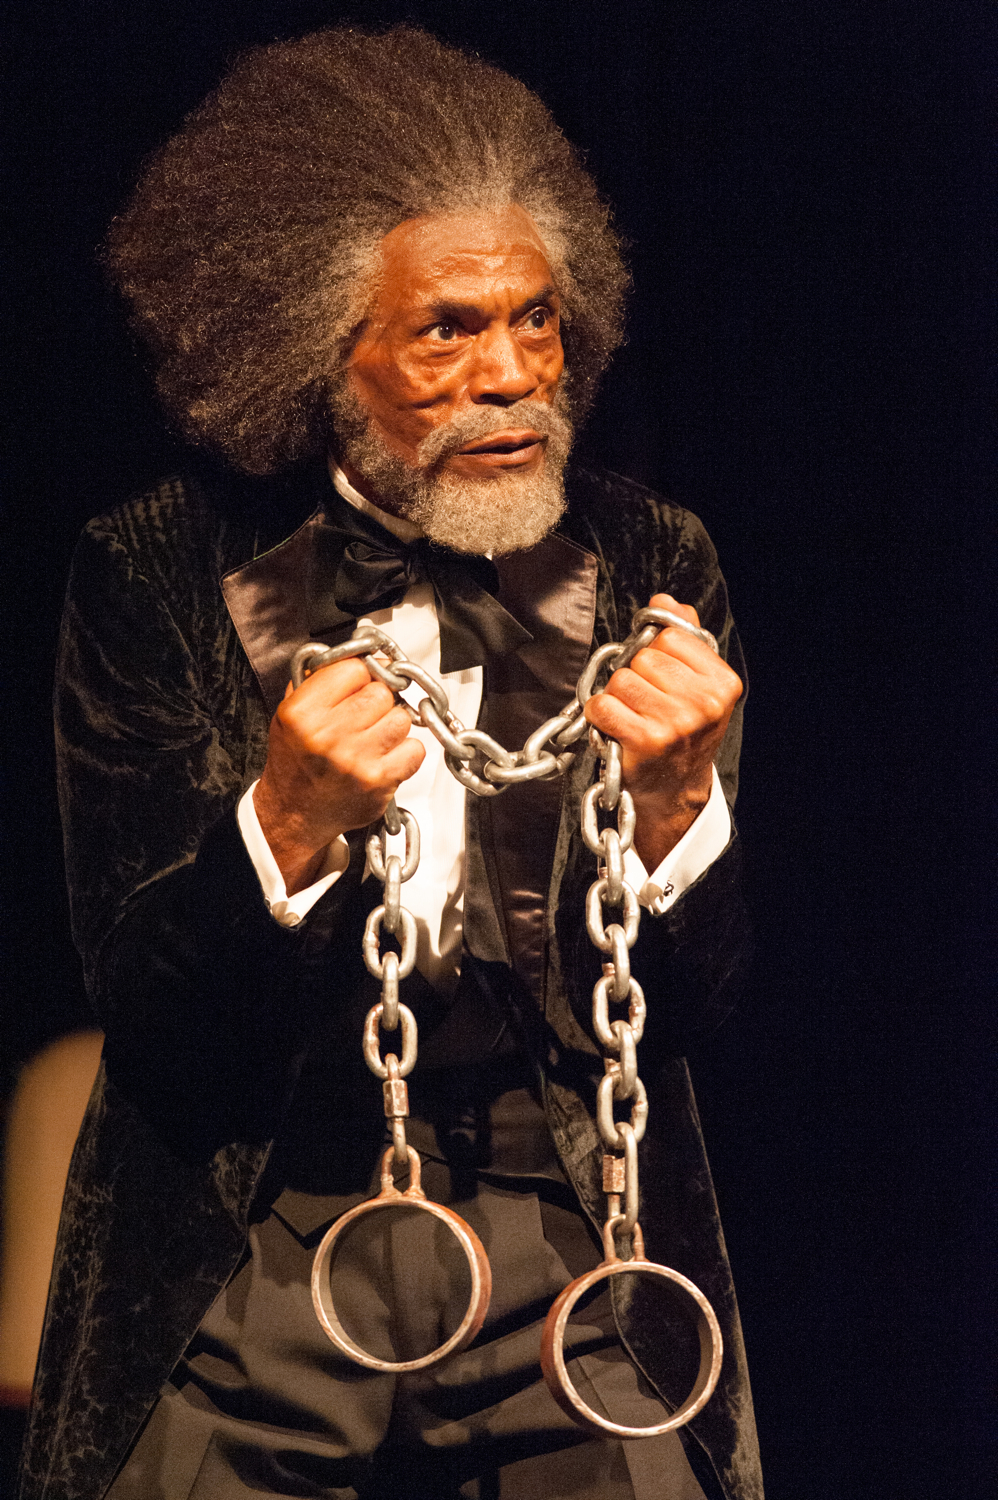 André De Shields as Frederick Douglas in Mine Eyes Have Seen the Glory.